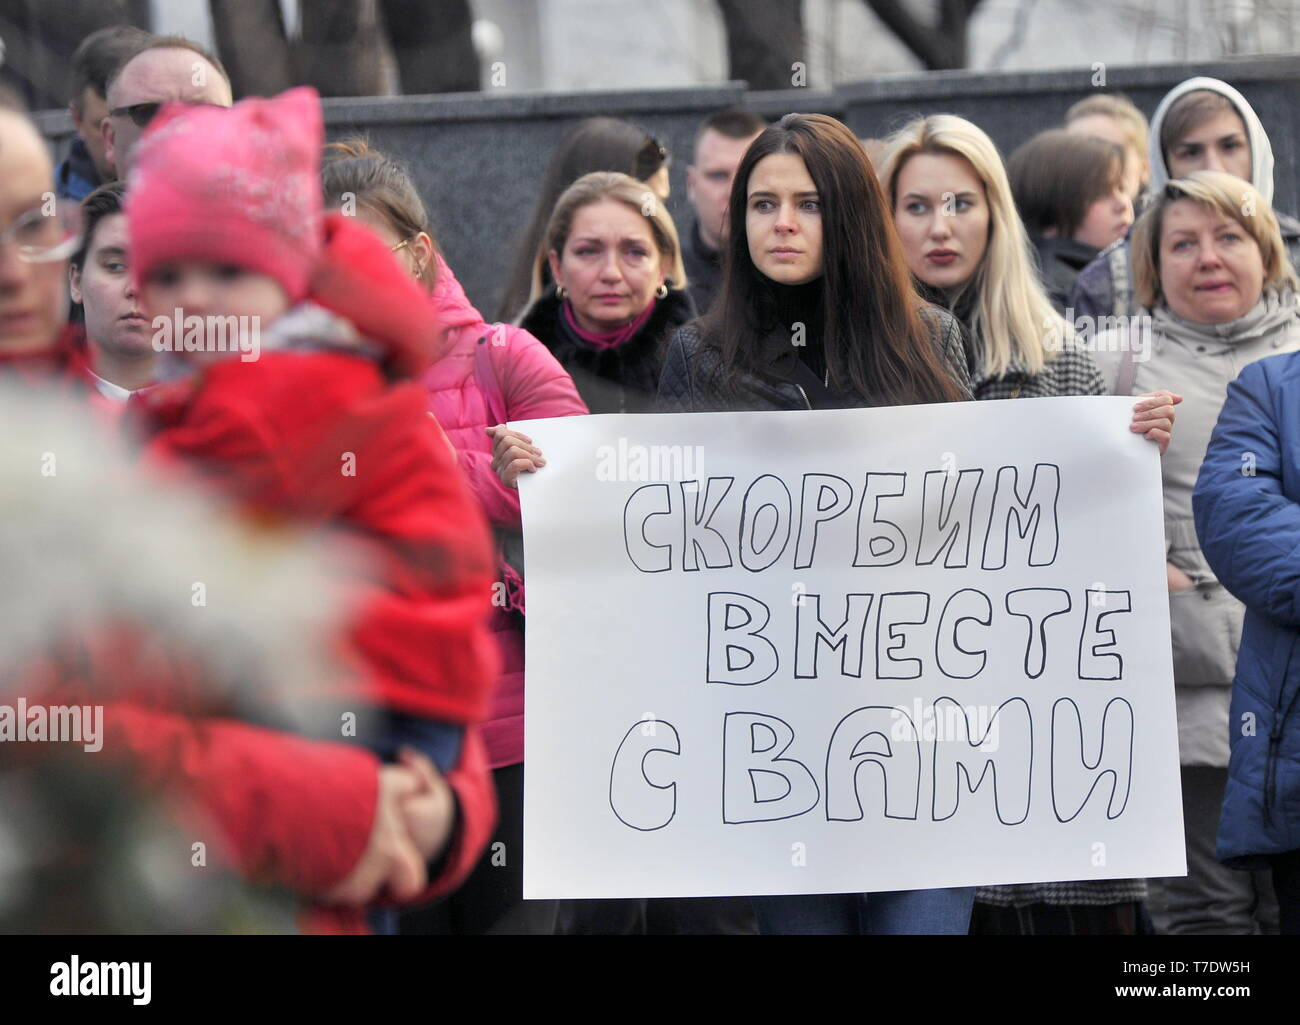 MURMANSK, RUSSIA - MAY 6, 2019: People bring flowers at a monument to the intervention victims in memory of the victims of an aircraft accident at Moscow's Sheremetyevo Airport. An Aeroflot Sukhoi Superjet-100 (SSJ100) passenger aircraft (registration RA-89098) left Sheremetyevo for Murmansk on May 5 at around 6pm Moscow time, returned and made an emergency landing at around 6.40pm due to a fire aboard; the crash landing and the fire have resulted in multiple casualties. Lev Fedoseyev/TASS - Stock Image